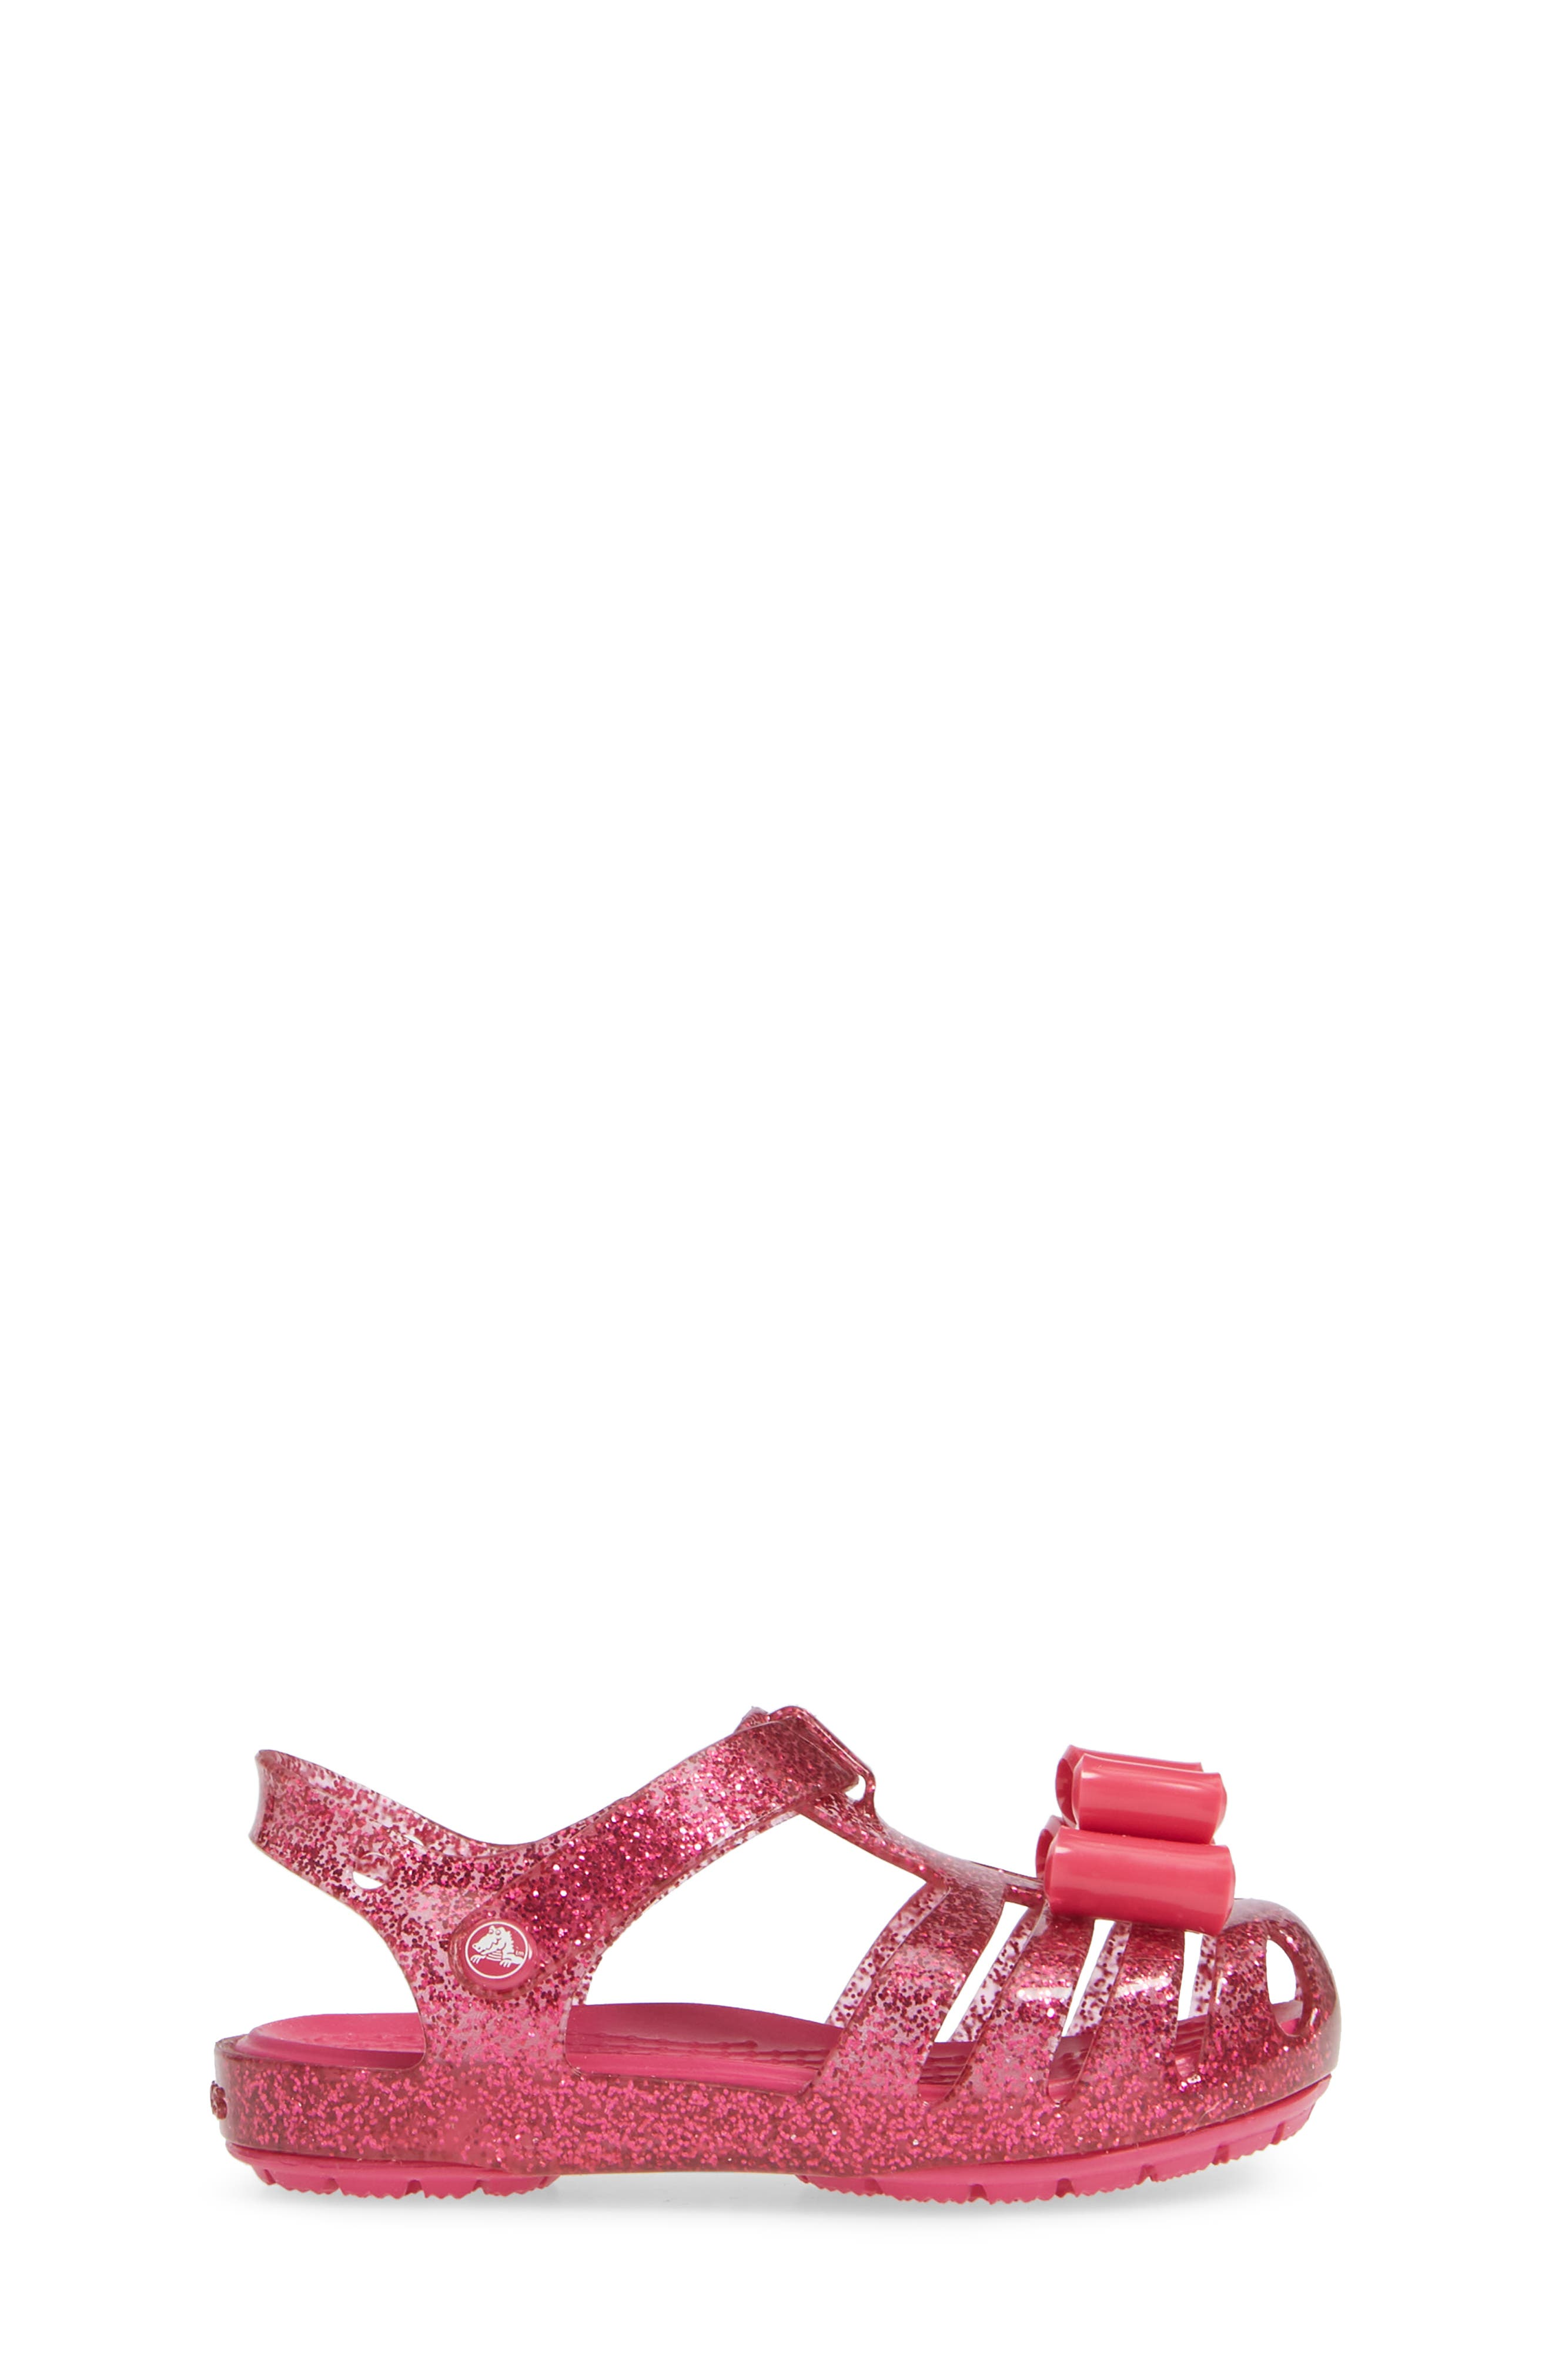 Isabella Bow Glitter Fisherman Sandal,                             Alternate thumbnail 3, color,                             Candy Pink